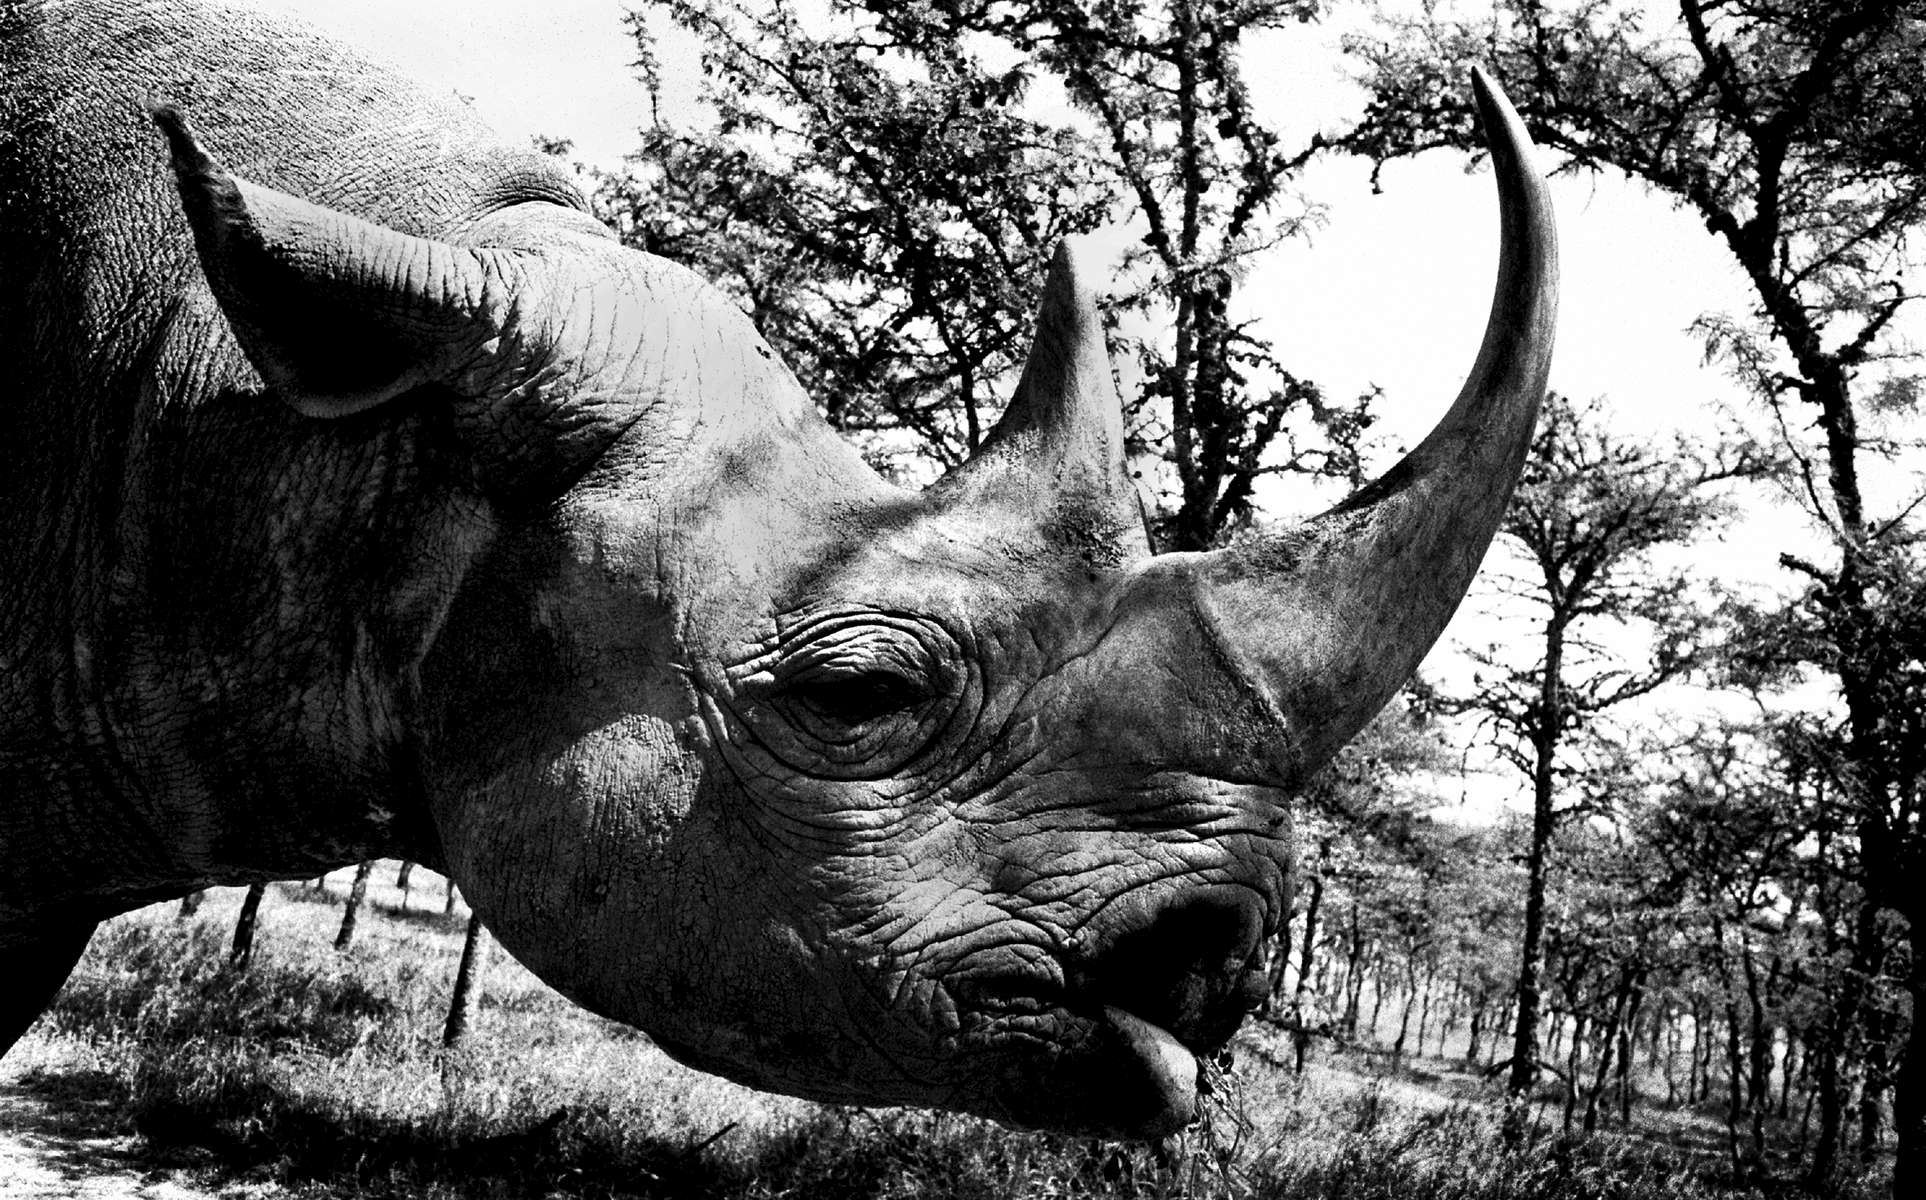 A habituated black rhino in a private reserve at Sweetwaters tented camp, Kenya30 x 45 cm | $800 USD